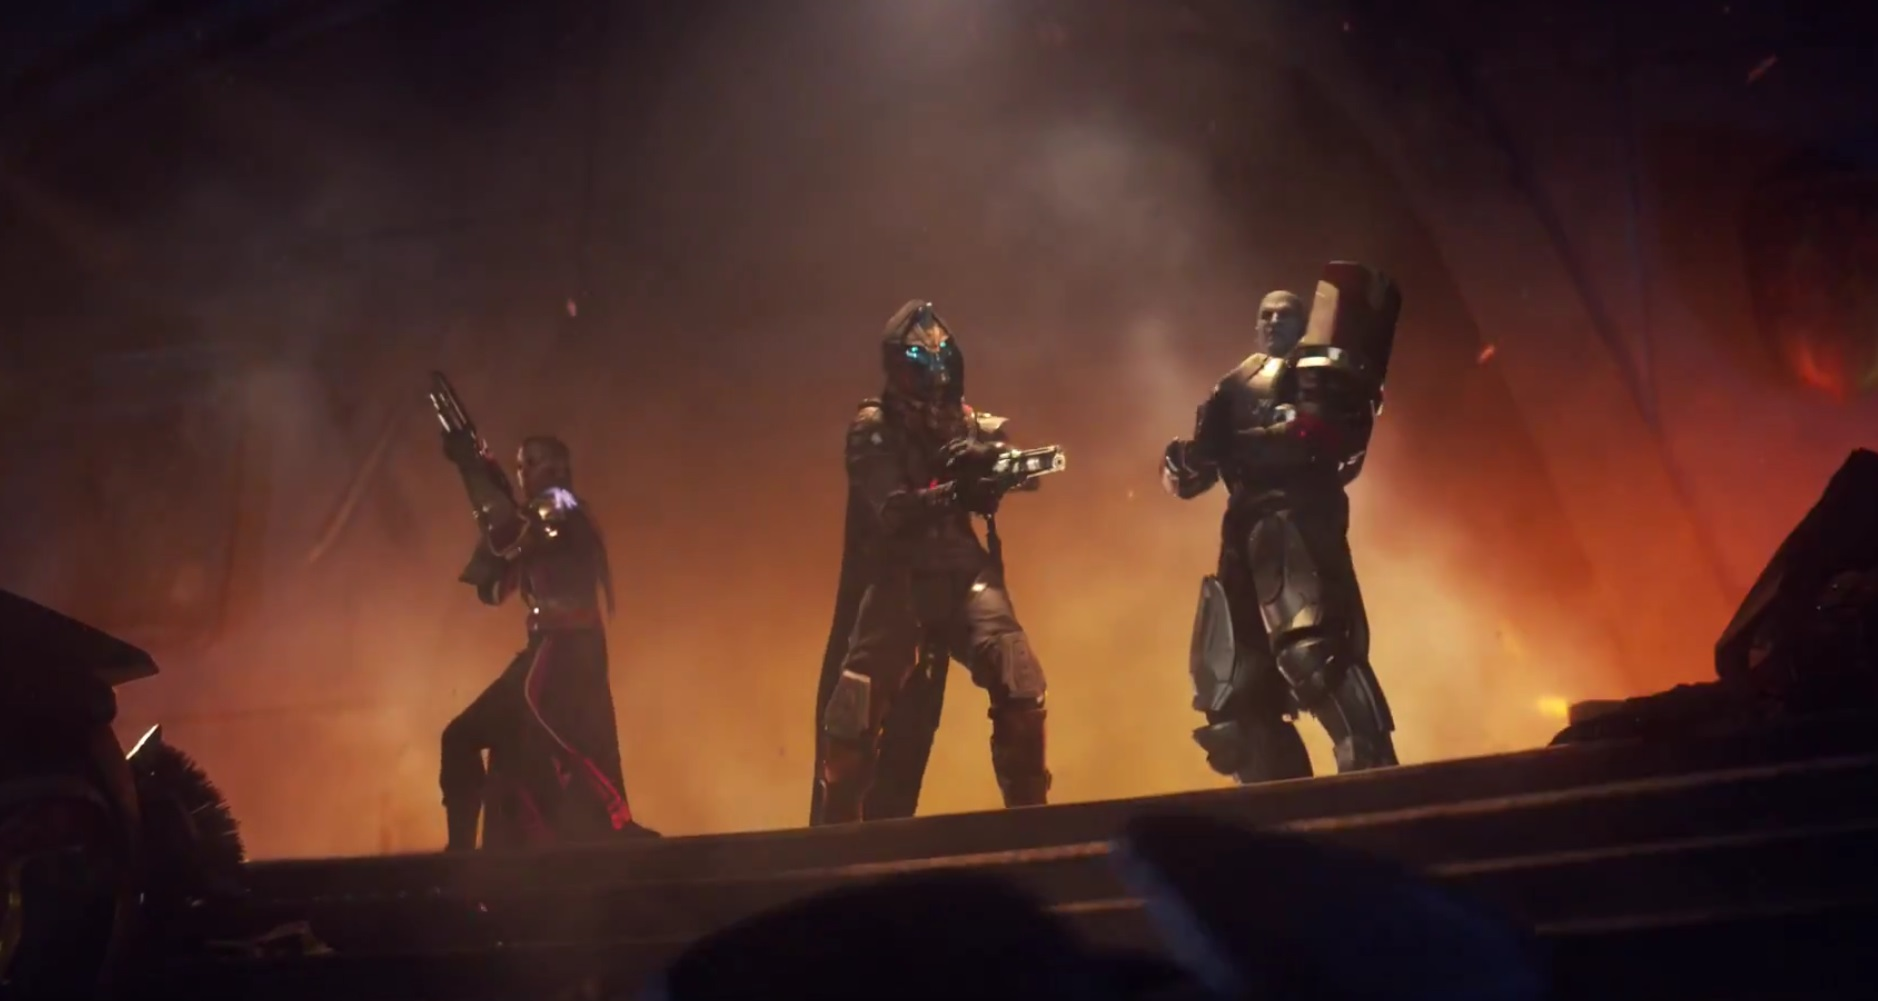 how to download the open destiny 2 beta pc